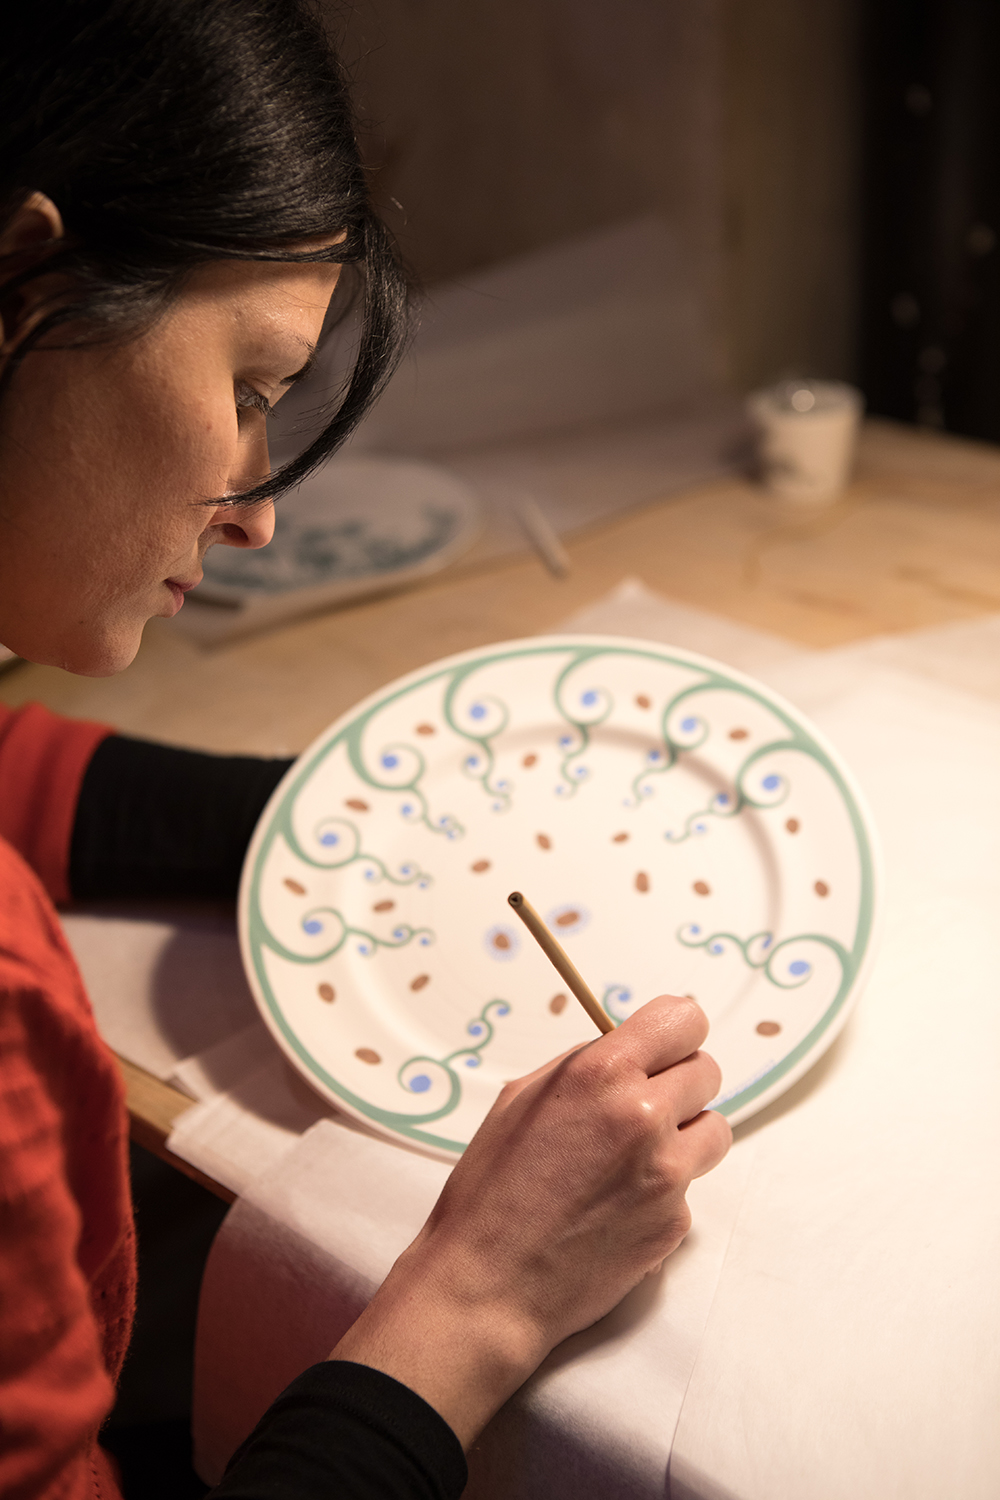 Paravincini ceramics professional profile portrait photography documentary Italy by Aimee Almstead 2.jpg